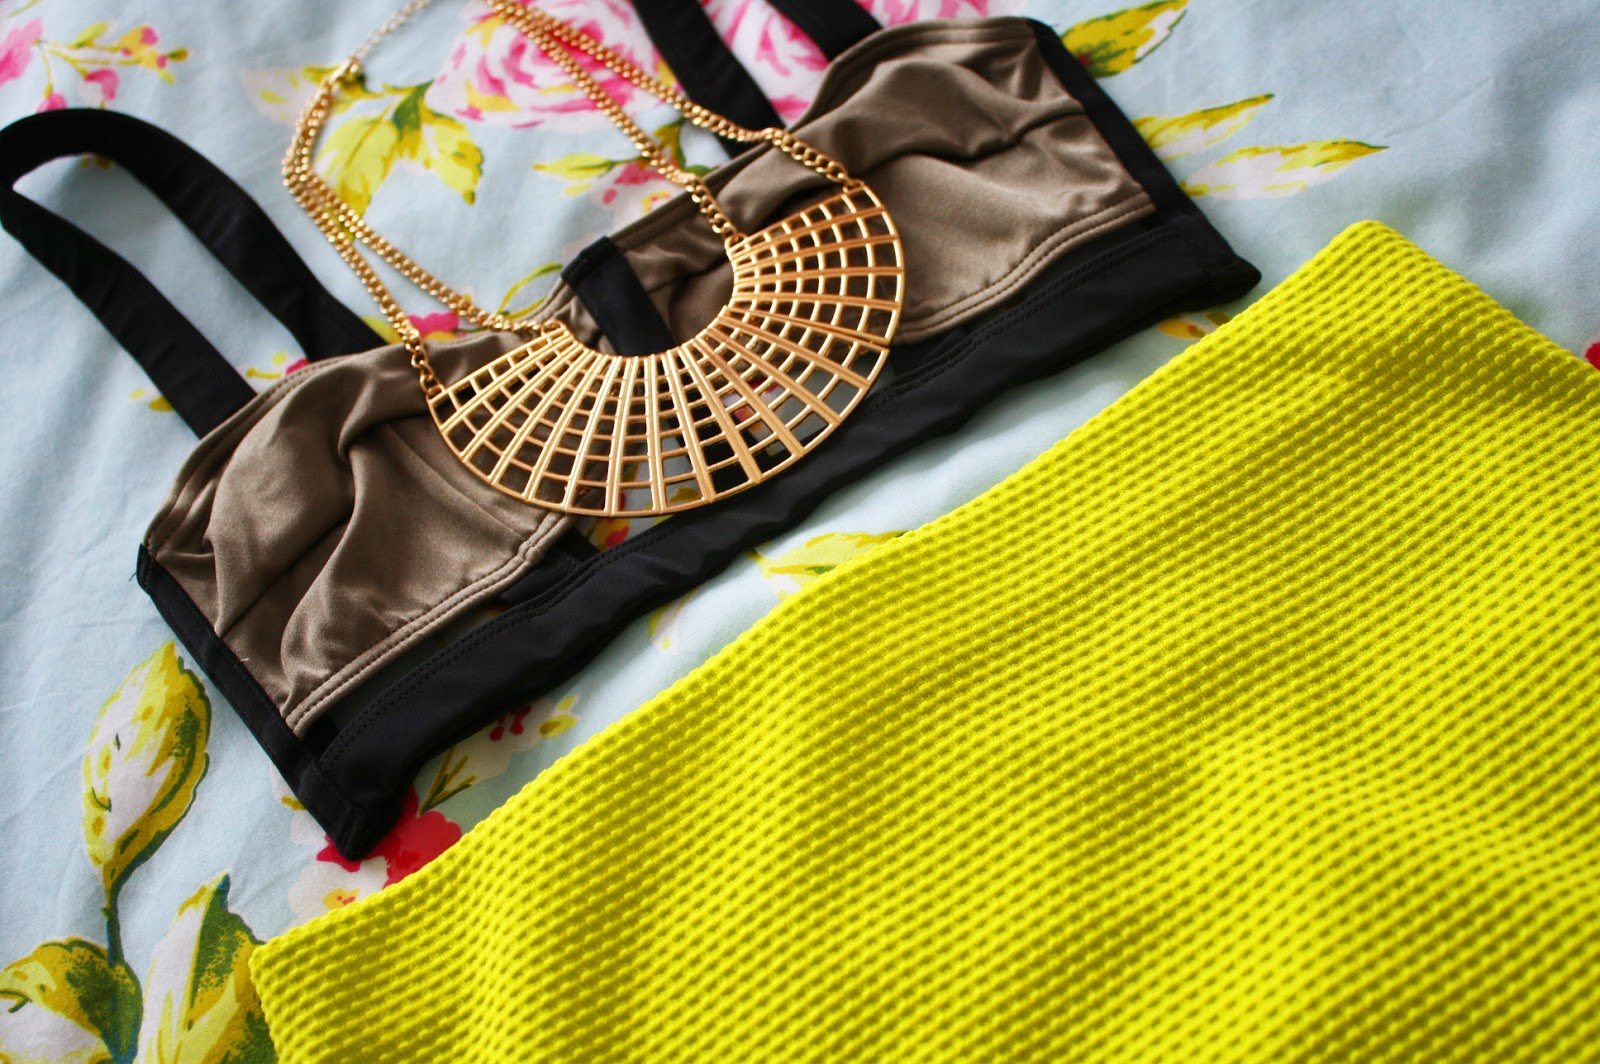 A Topshop bikini styled as a top with a River Island skirt